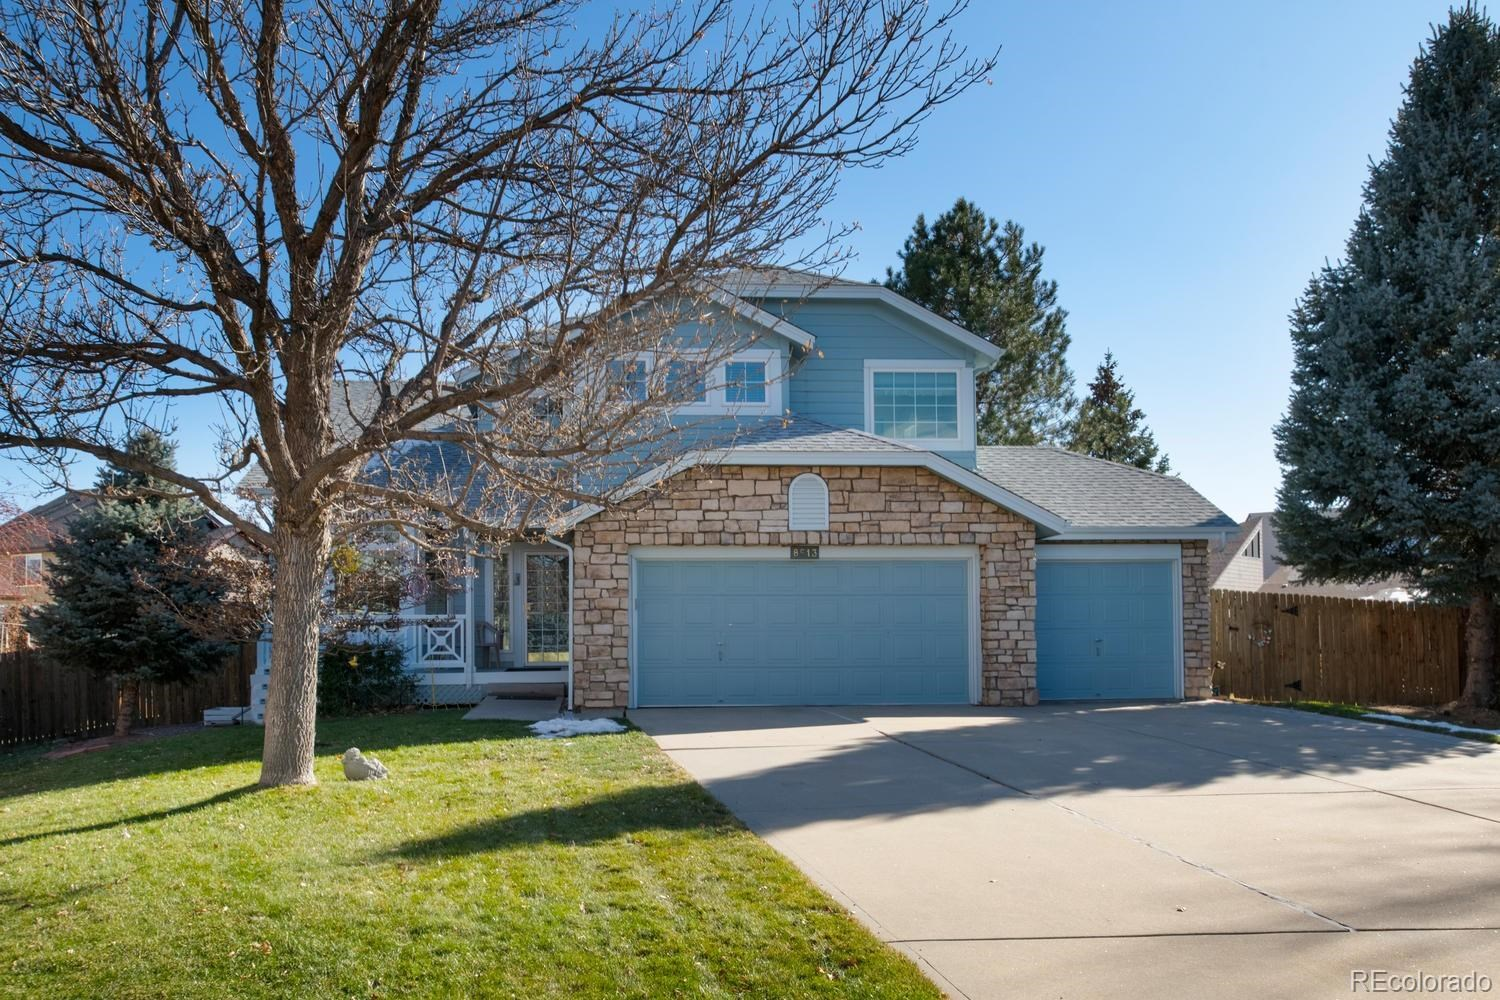 MLS# 8680648 - 1 - 8513 W 94th Avenue, Westminster, CO 80021